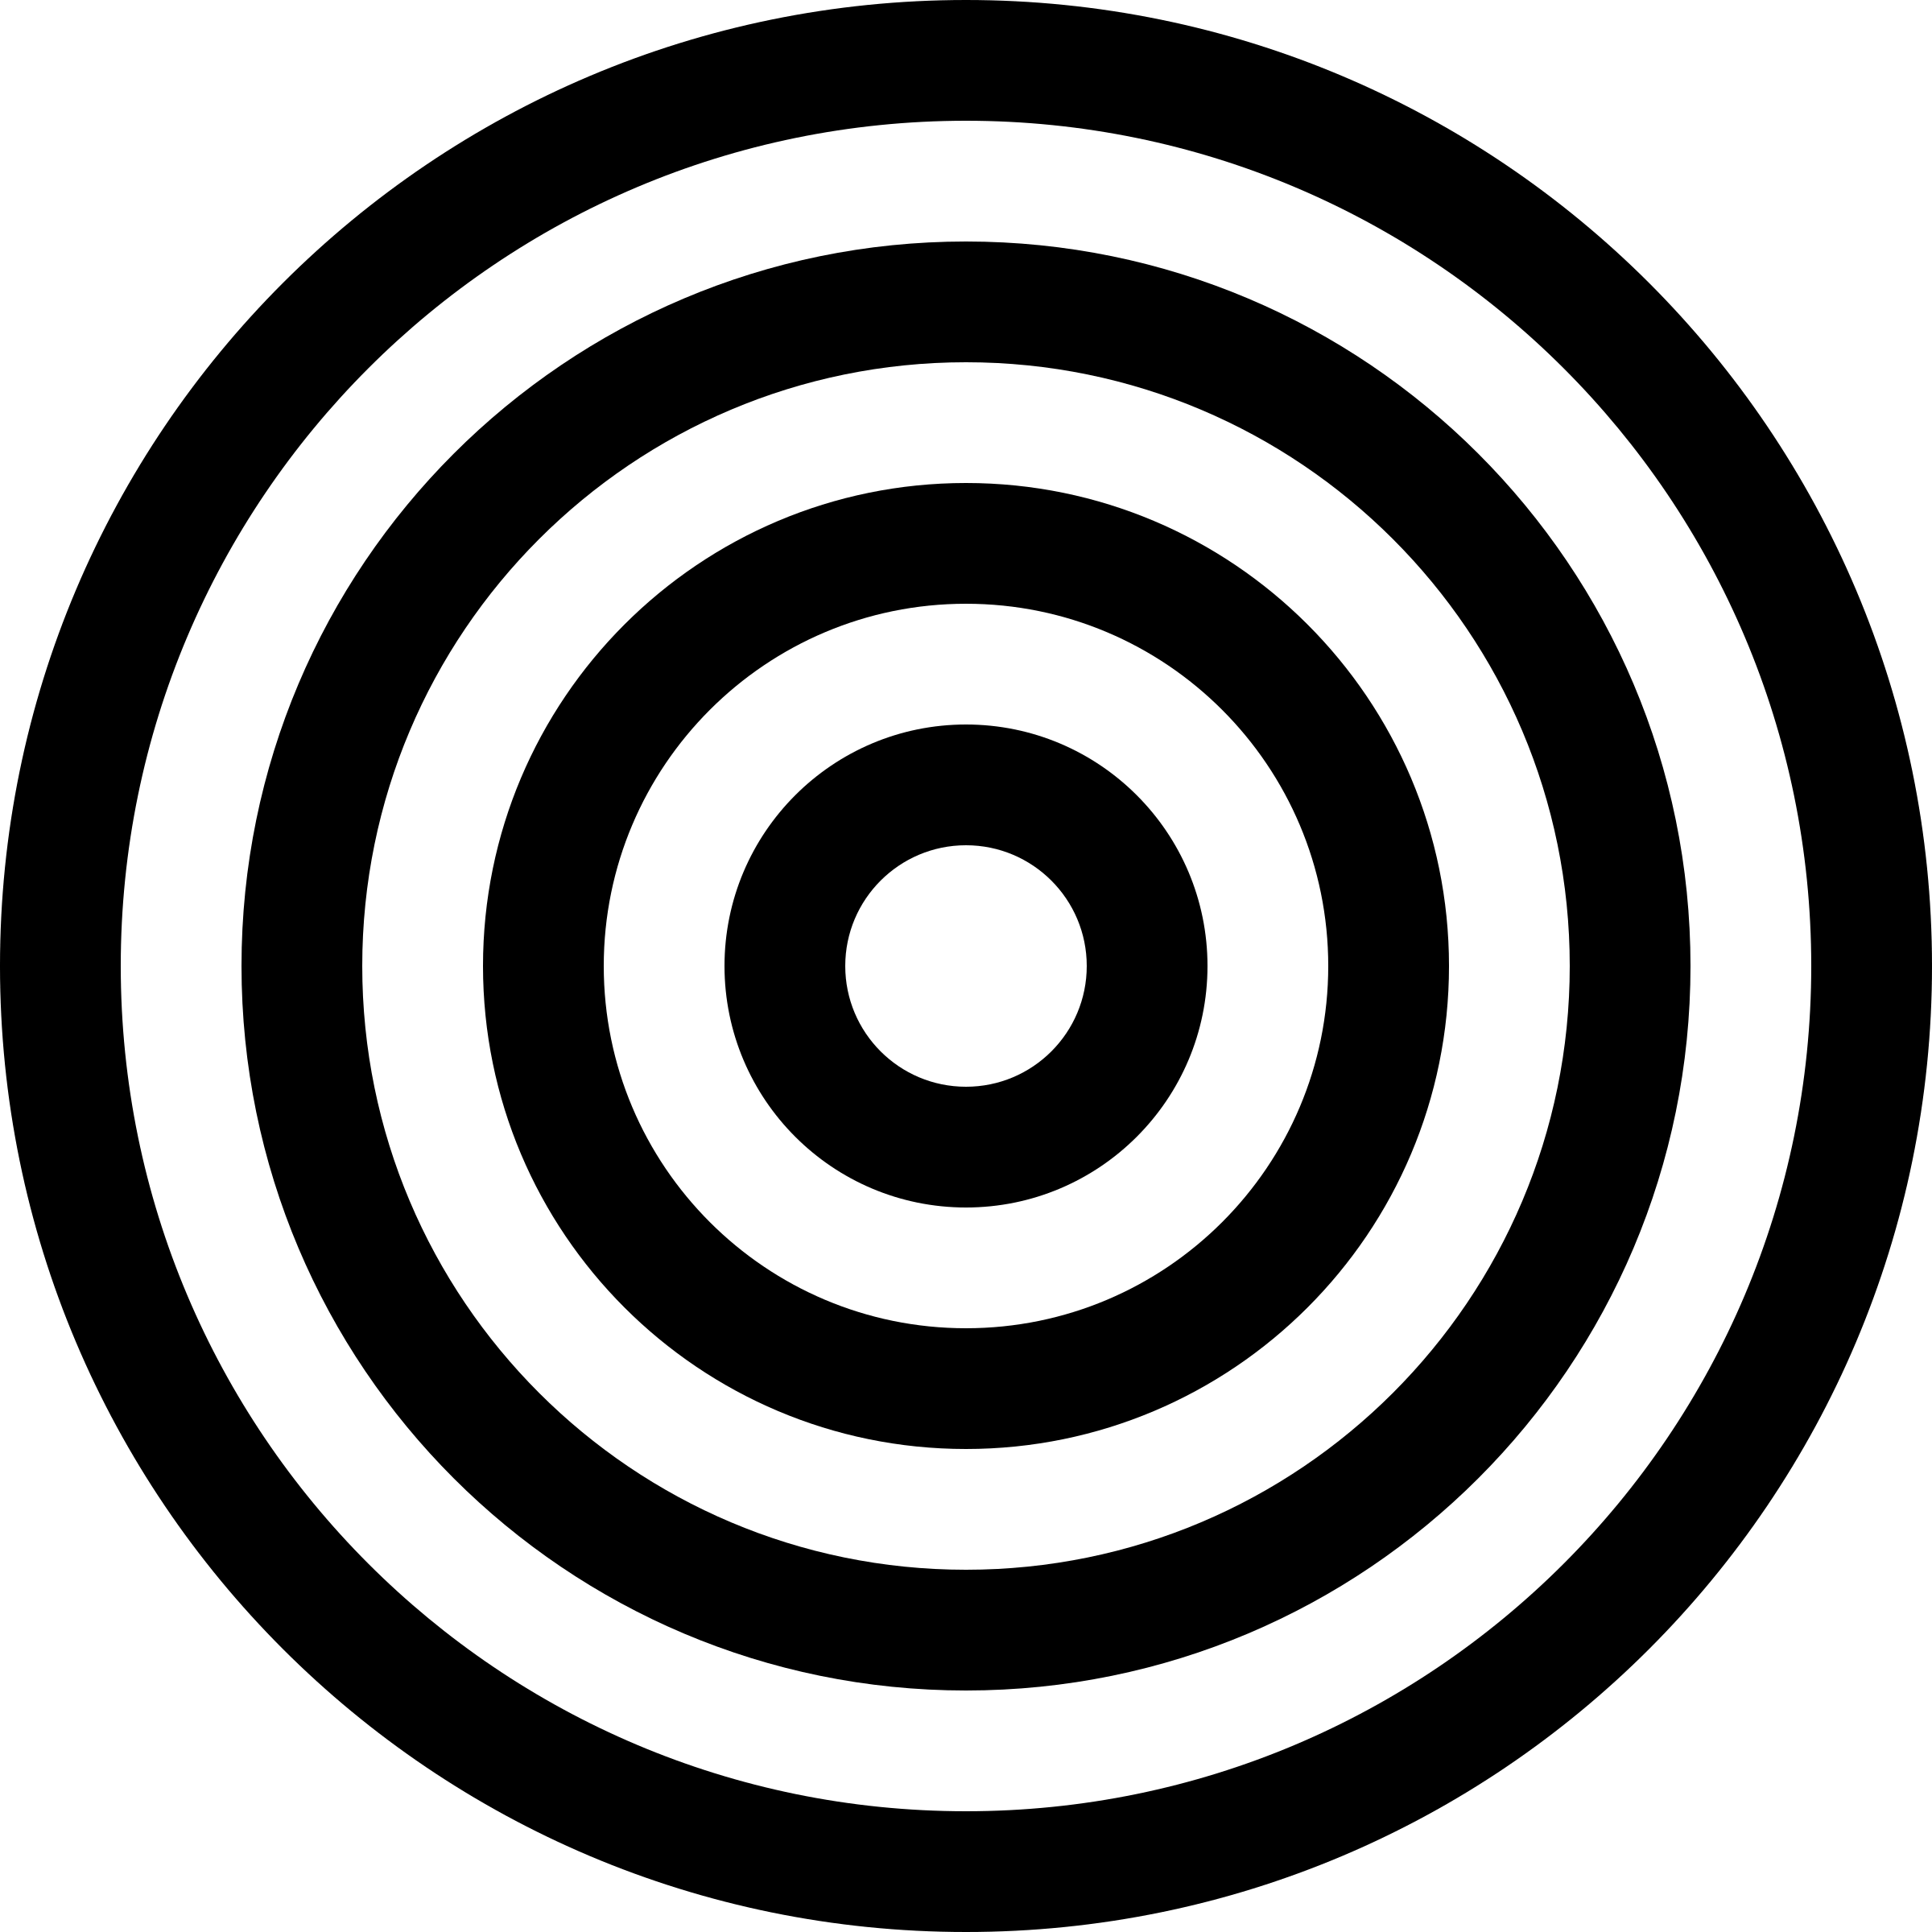 2149 Target free clipart.